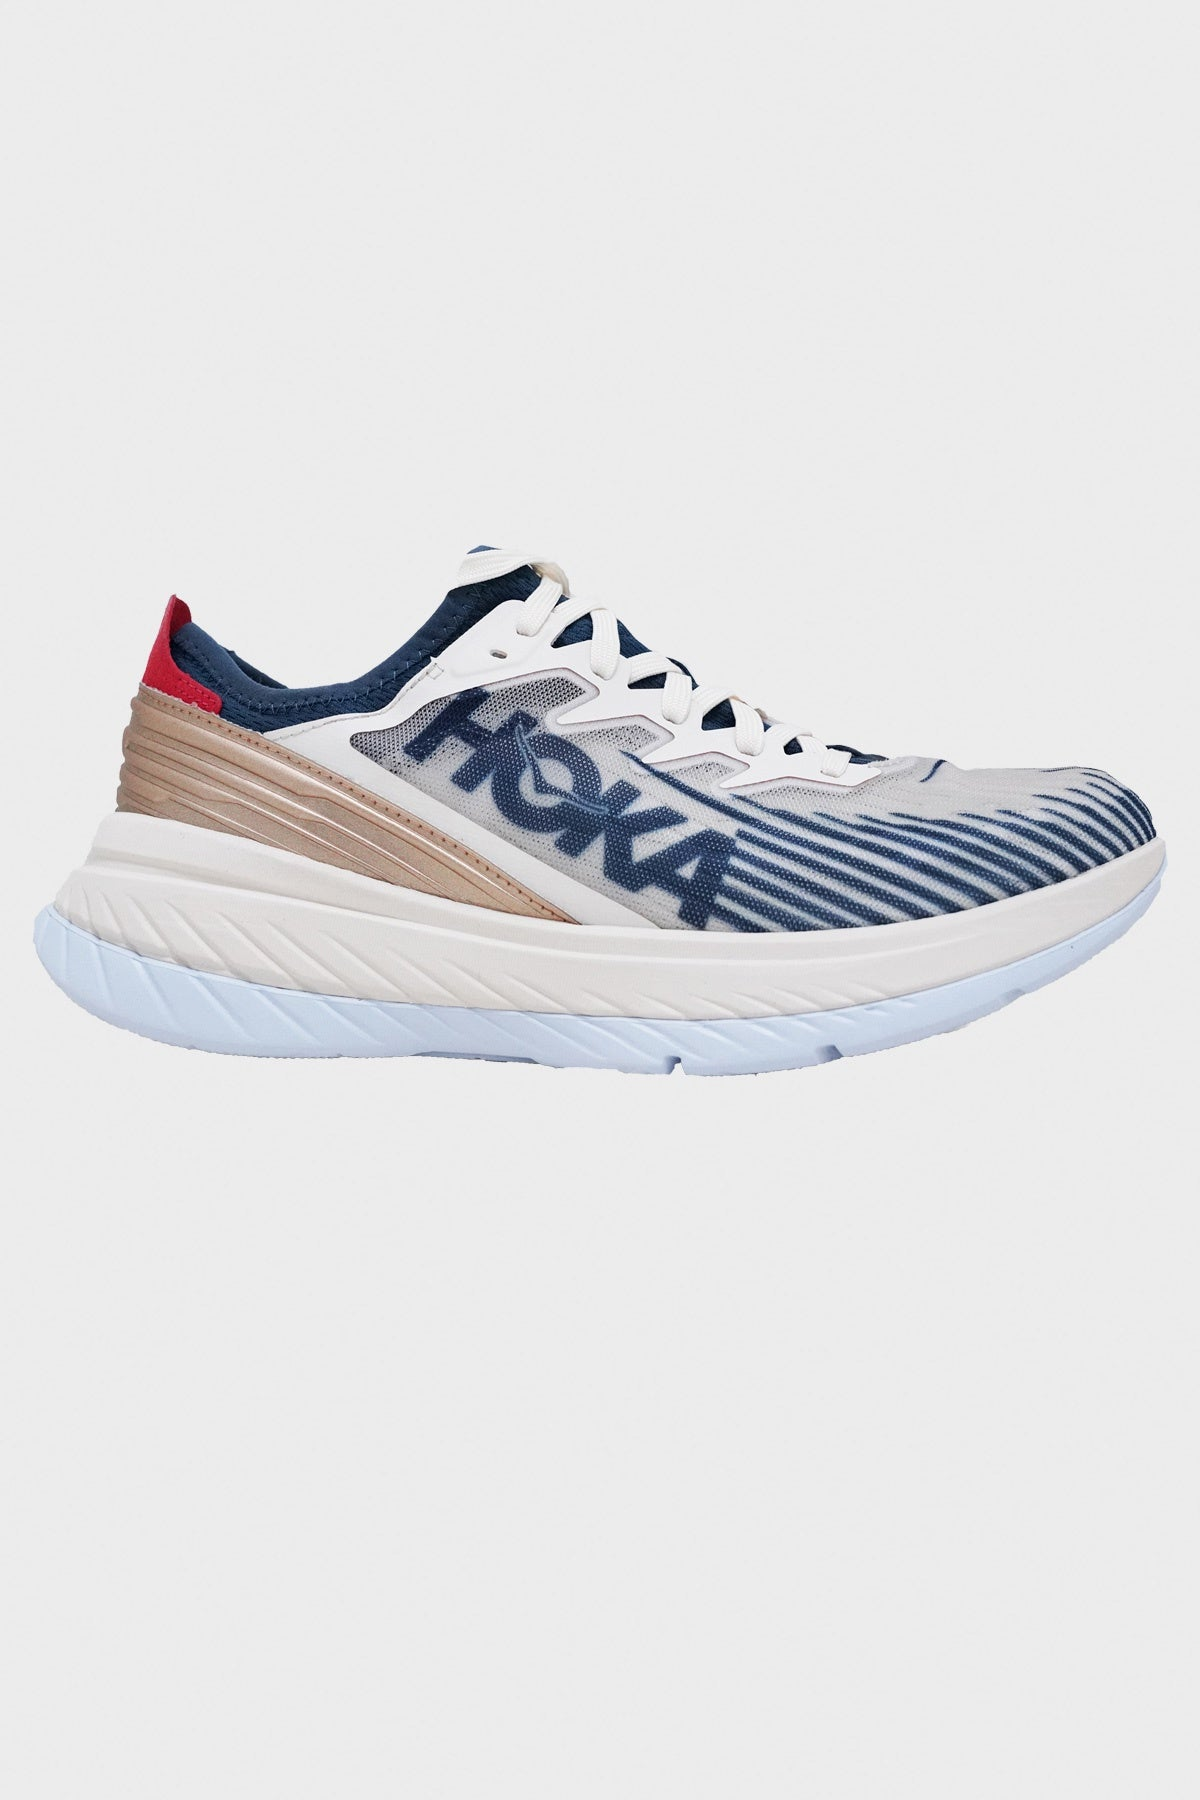 hoka one one Carbon X-SPE shoes - Tofu/White